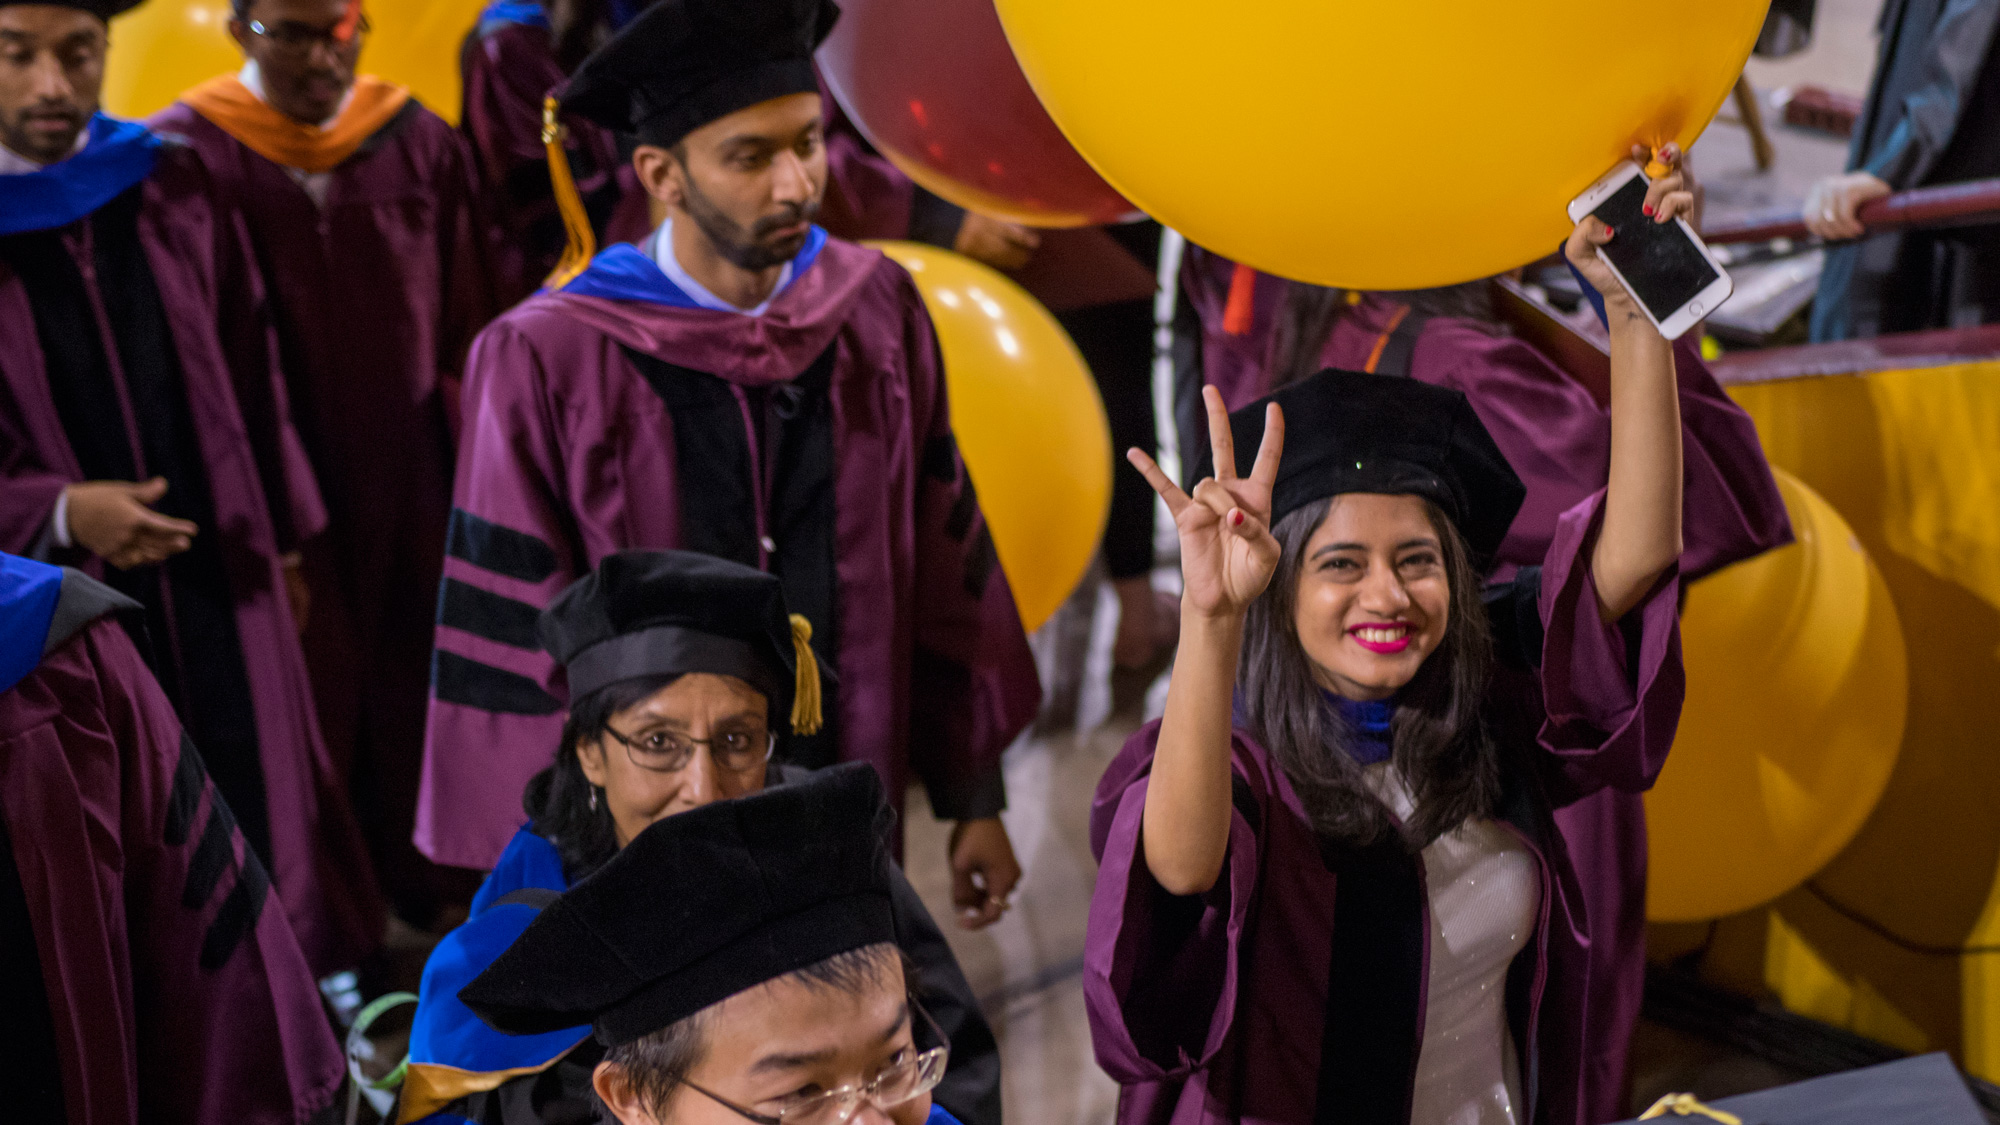 A student holds a balloon in one hand and holds an ASU pitchfork gesture in the other, as she smiles leaving Convocation